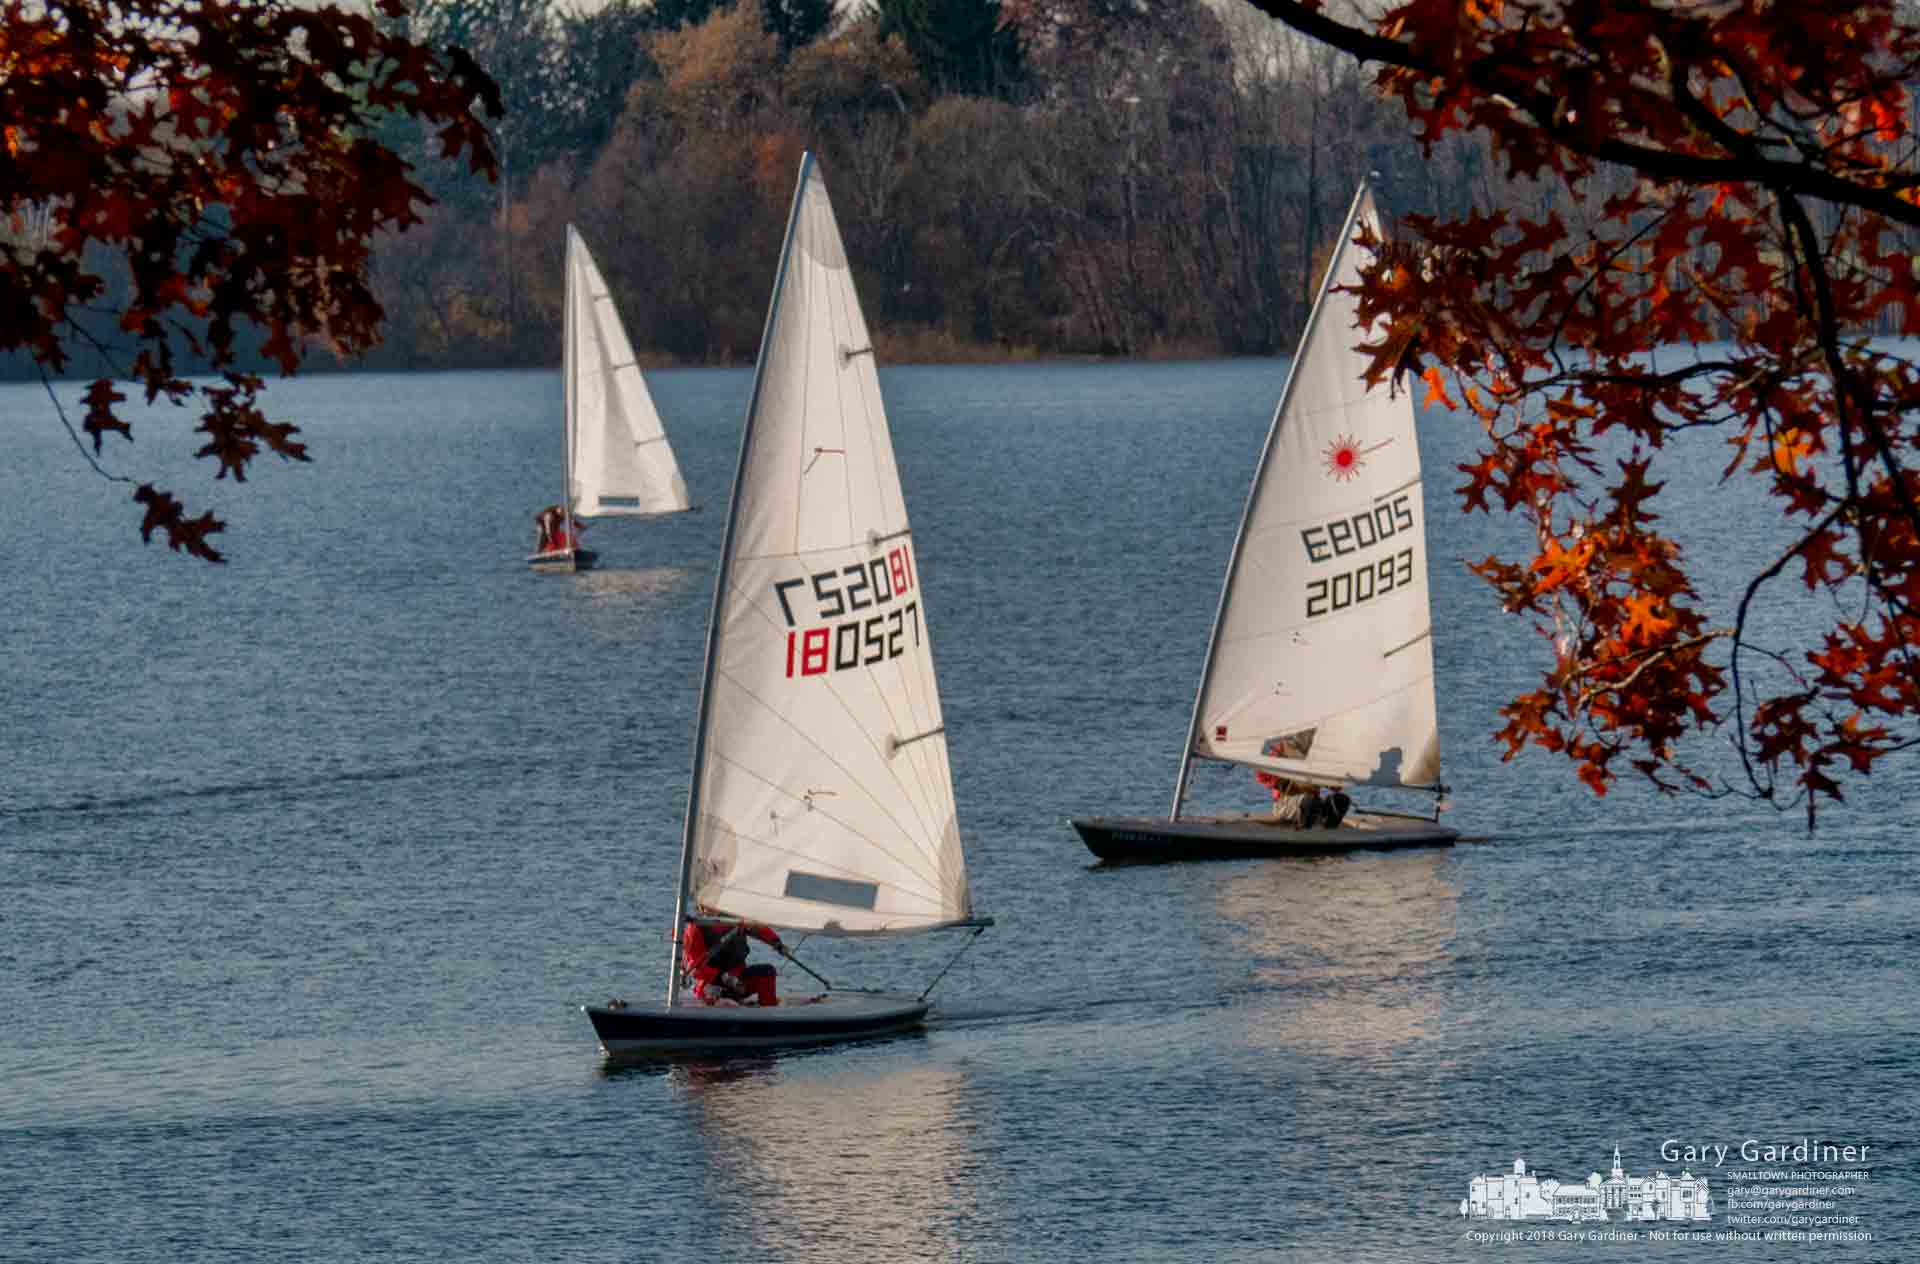 Sailors return to the docks at the Hoover Sail Club after finishing a brisk race on the cold waters of Hoover Reservoir. My Final Photo for Nov. 11, 2018.